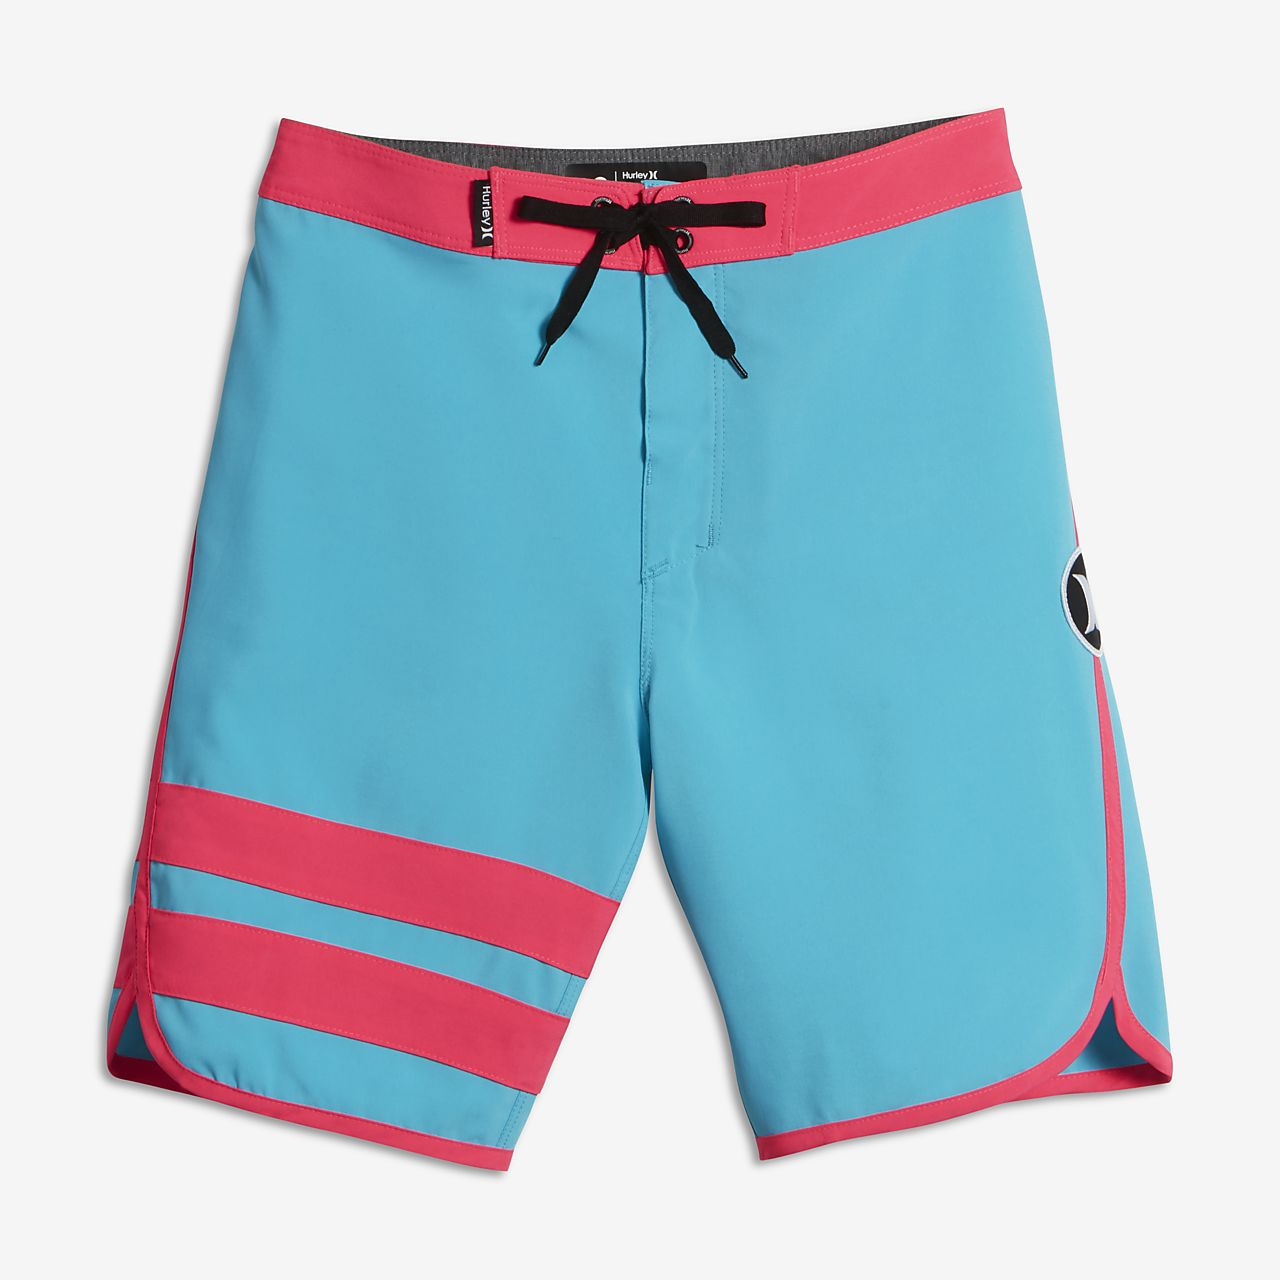 Hurley Block Party Big Kids' Board Shorts Blue